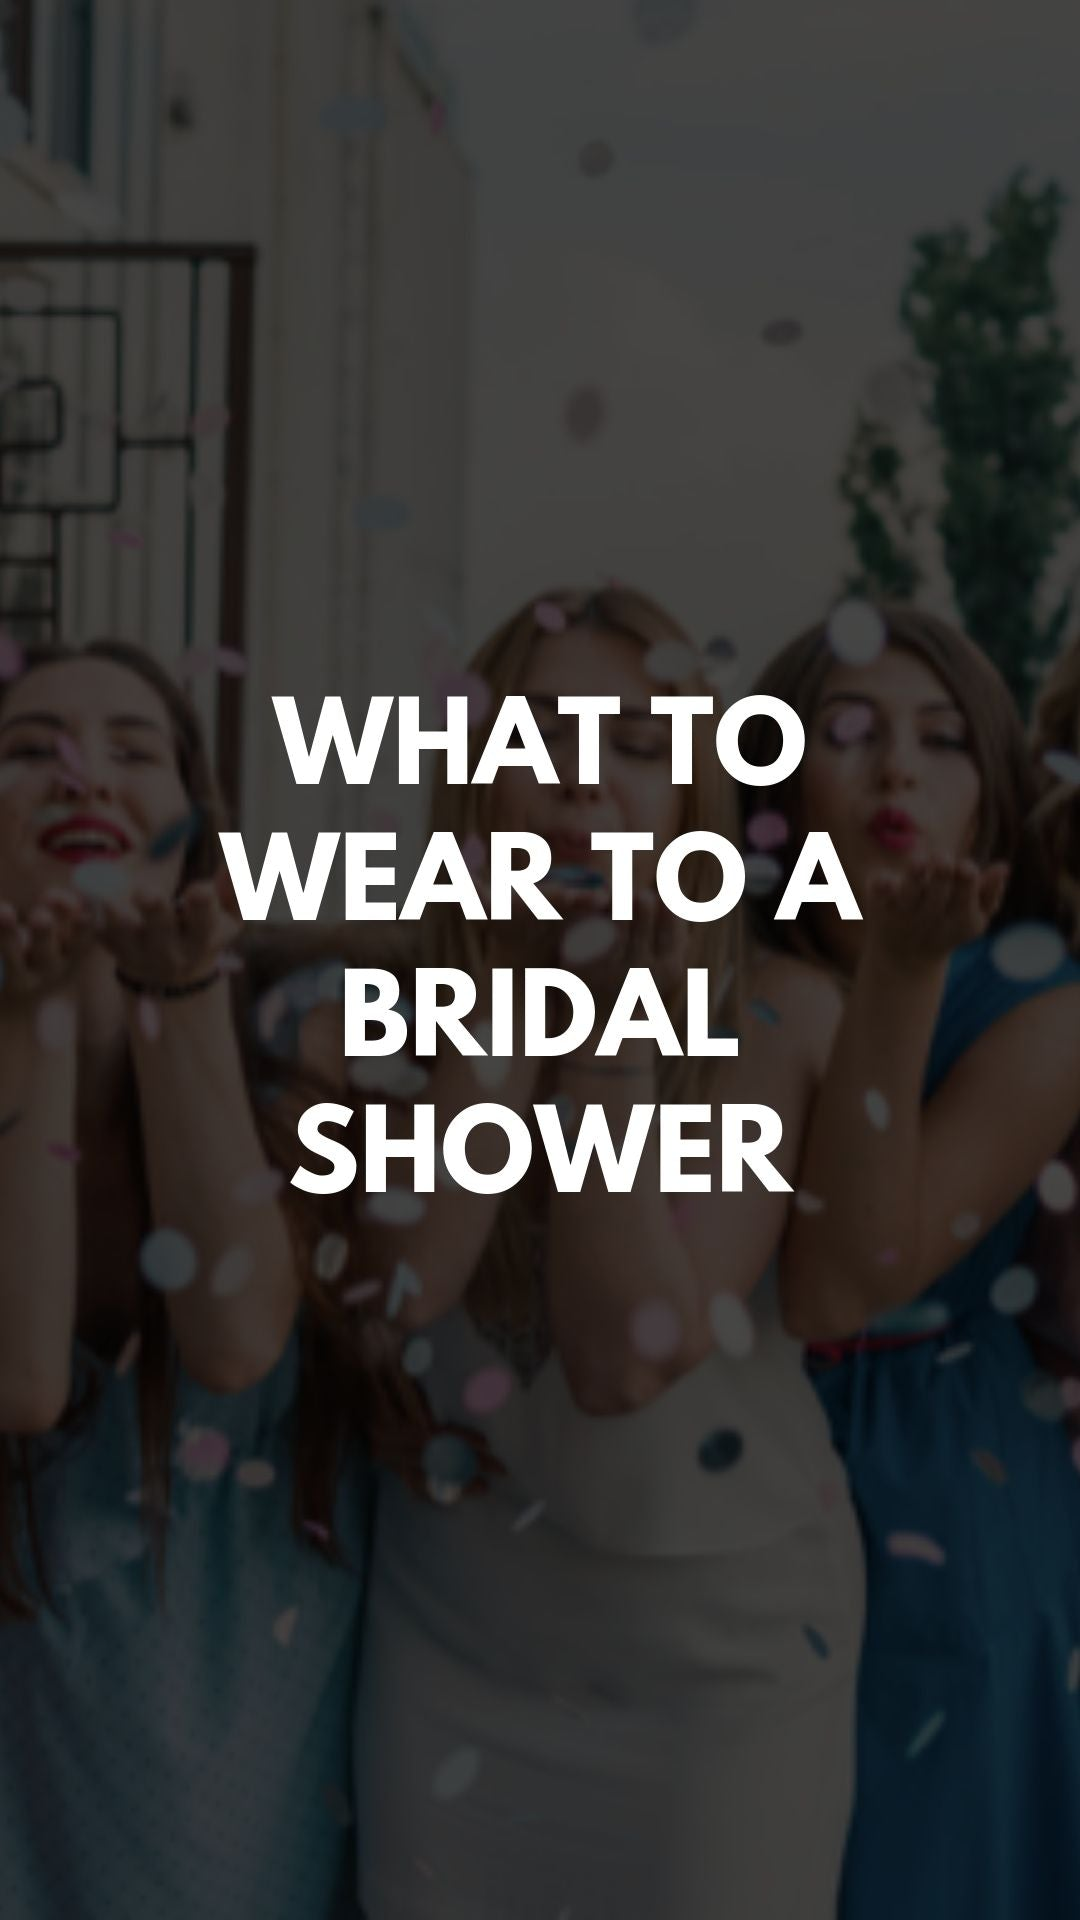 Bridal Shower Attire: What to Wear to a Bridal Shower